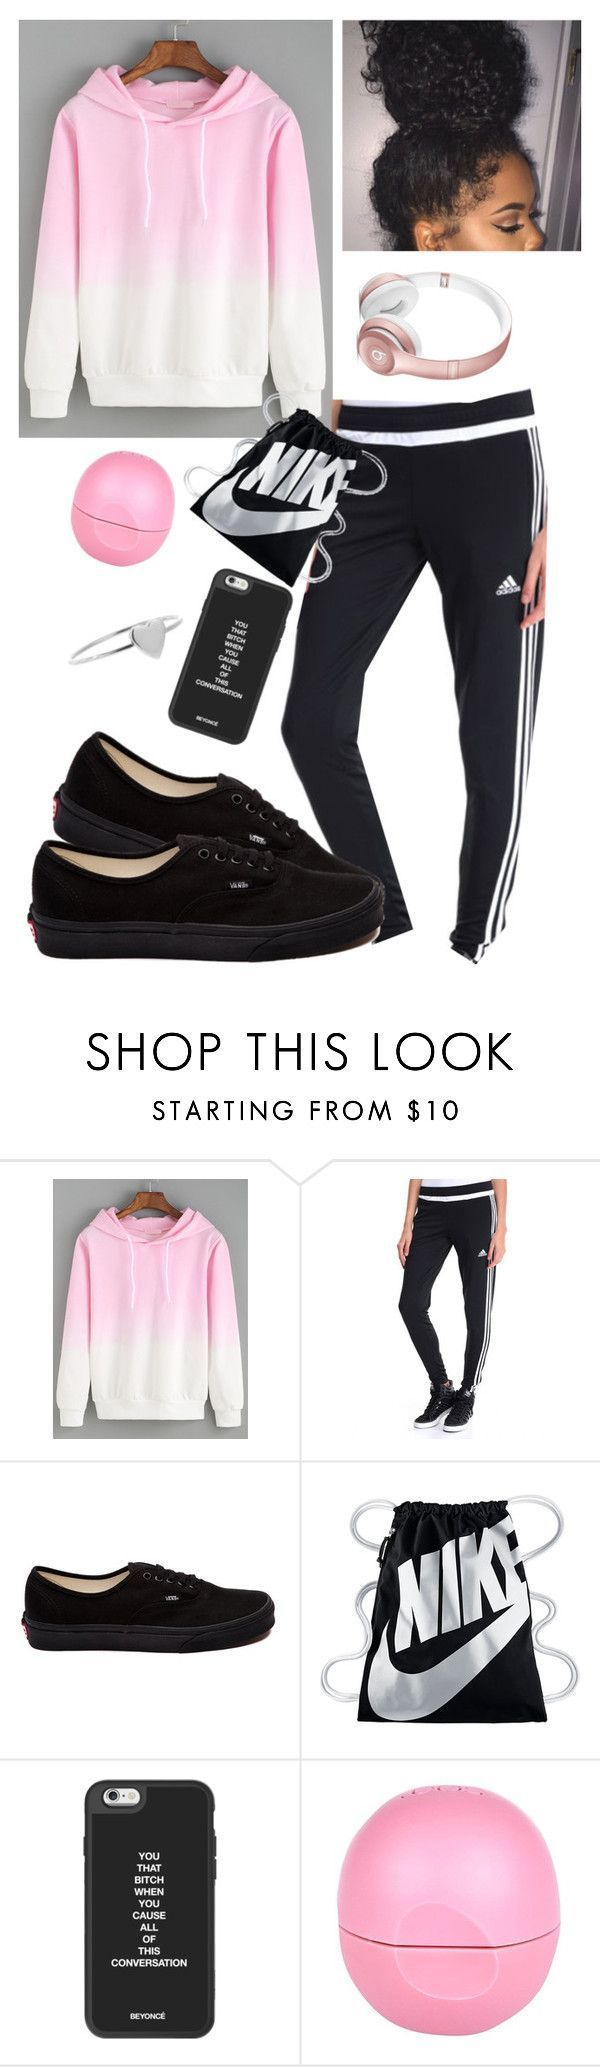 """Quick Day"" by jay-christina ❤ liked on Polyvore featuring adidas, Vans, NIKE, River Island and Jennifer Meyer Jewelry - #adidas #christina #fea..."